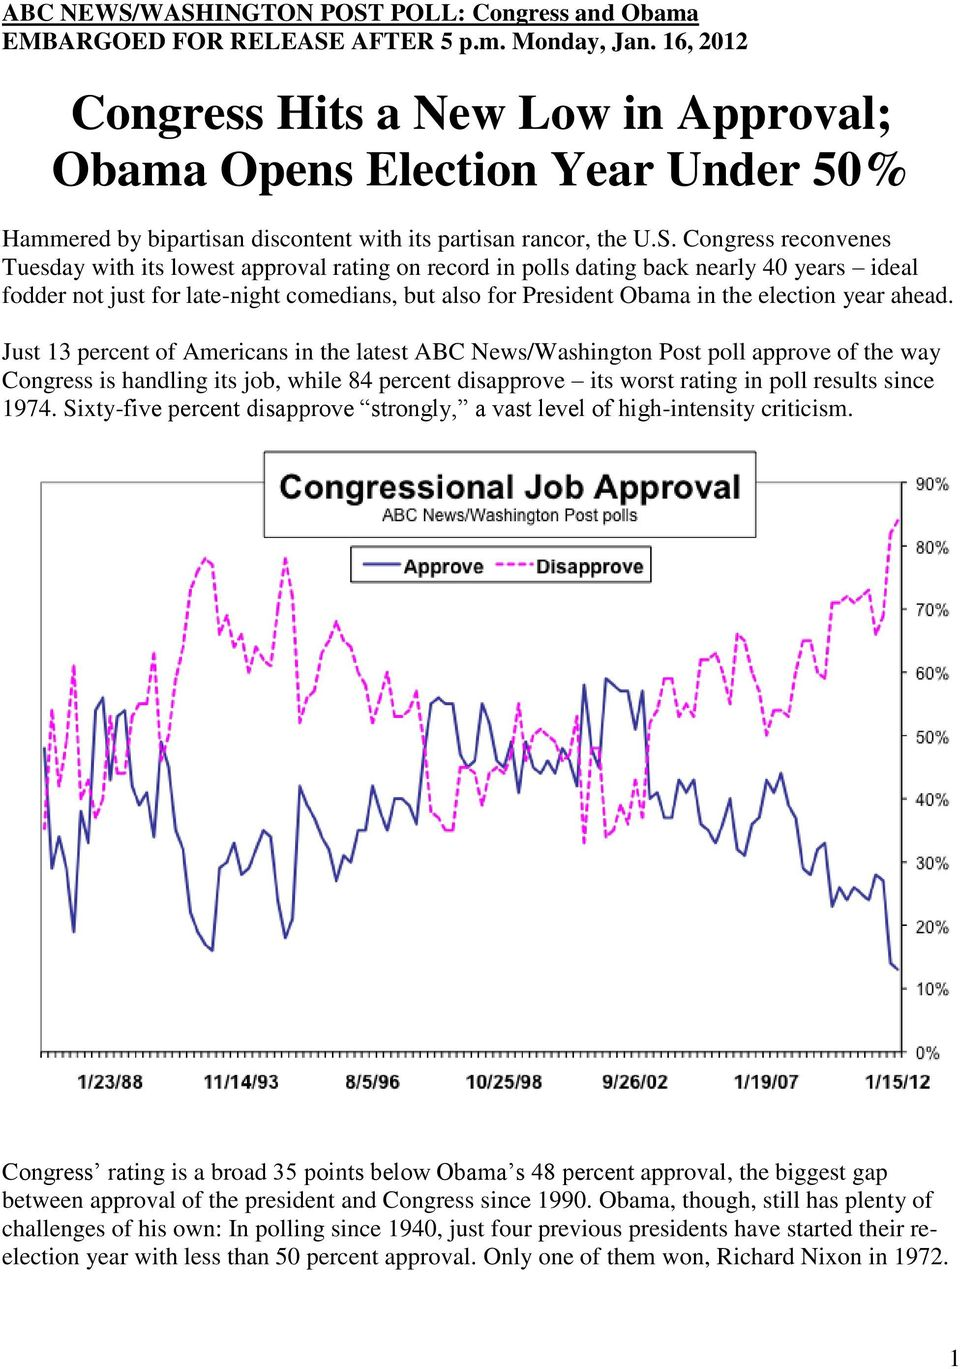 Congress reconvenes Tuesday with its lowest approval rating on record in polls dating back nearly 40 years ideal fodder not just for late-night comedians, but also for President Obama in the election